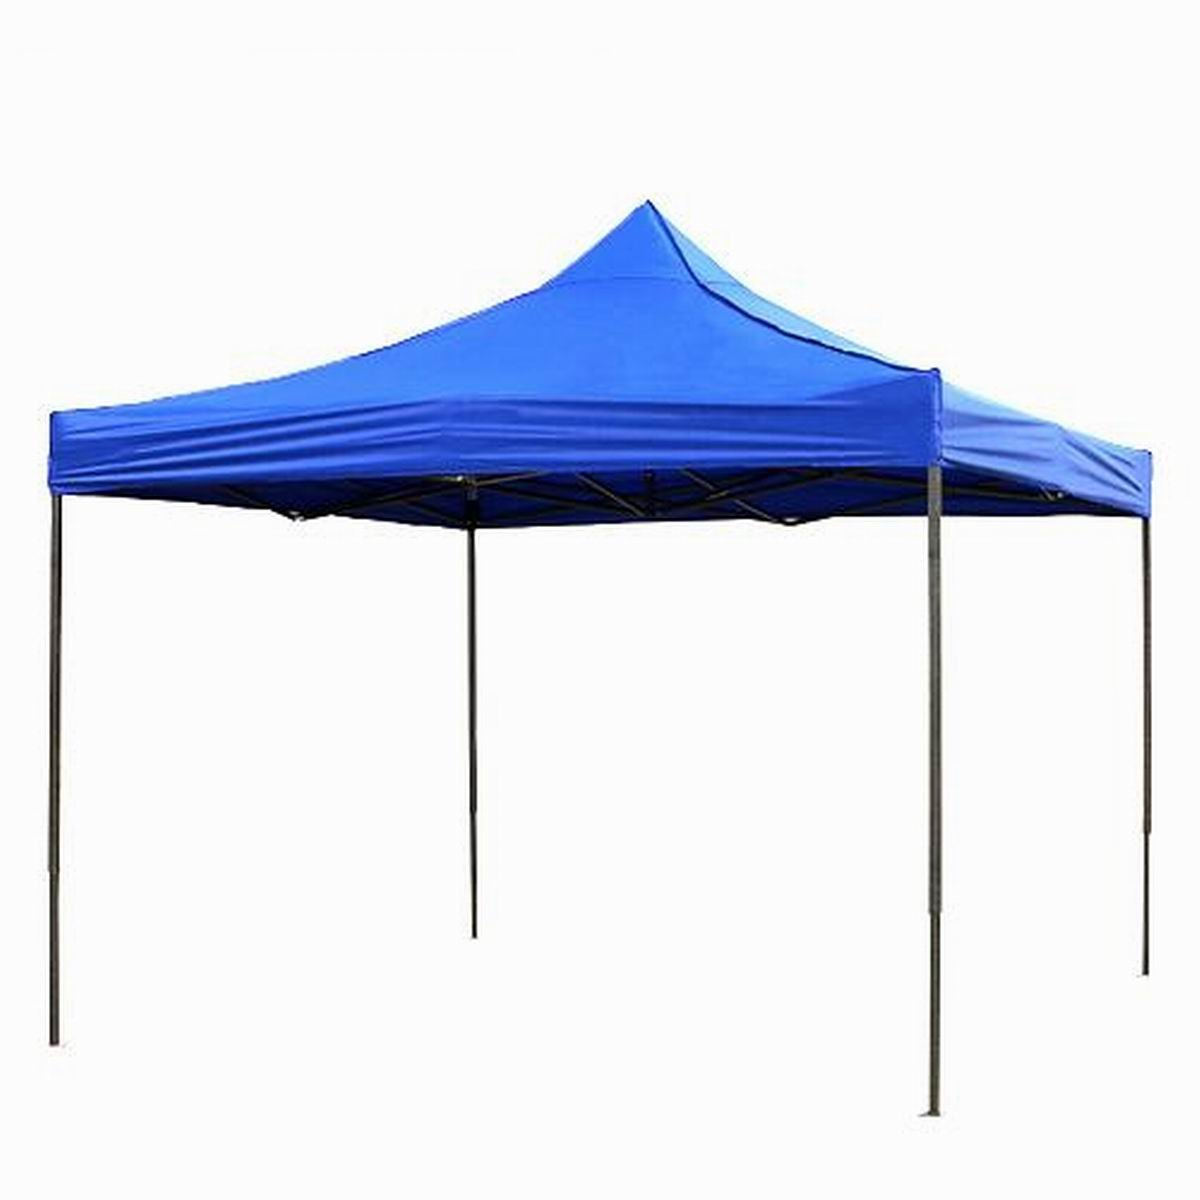 Carport Party Tent Innovations Light Weight and Portable Canopy Tent Carport Gazebos Blue 10 By 10-feet (blue) Amazon.co.uk Garden u0026 Outdoors  sc 1 st  Amazon UK & Carport Party Tent Innovations Light Weight and Portable Canopy Tent ...